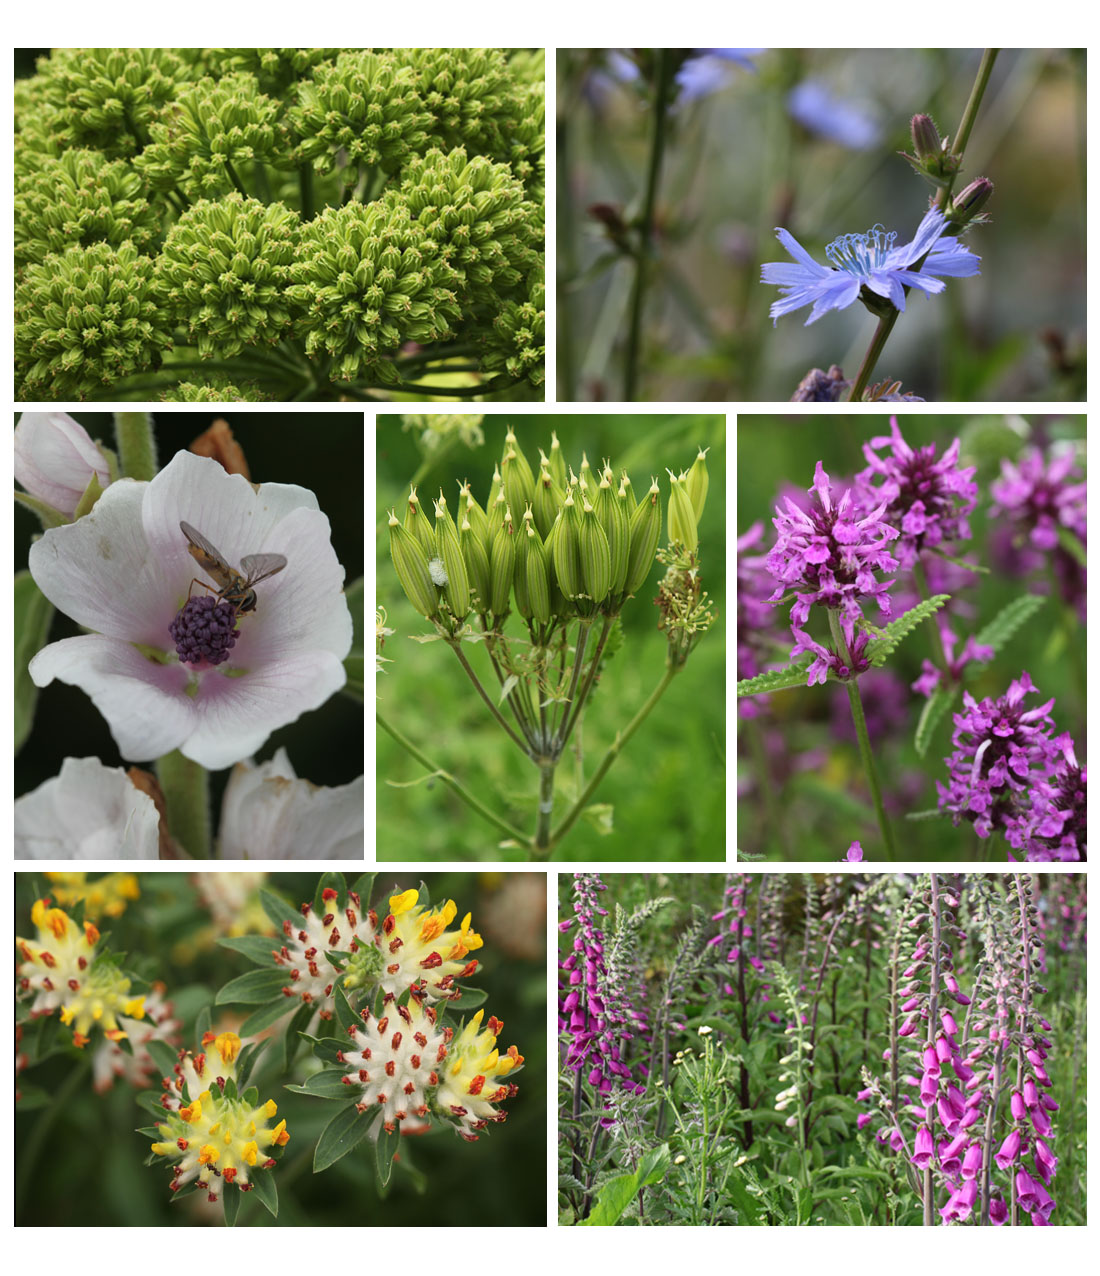 Medicinals in the Garden - (top) seeding angelica, chicory flower, (middle) marsh mallow flower, seeding sweet cicely, betony, (bottom) kidney vetch, foxglove (Living Field collection).